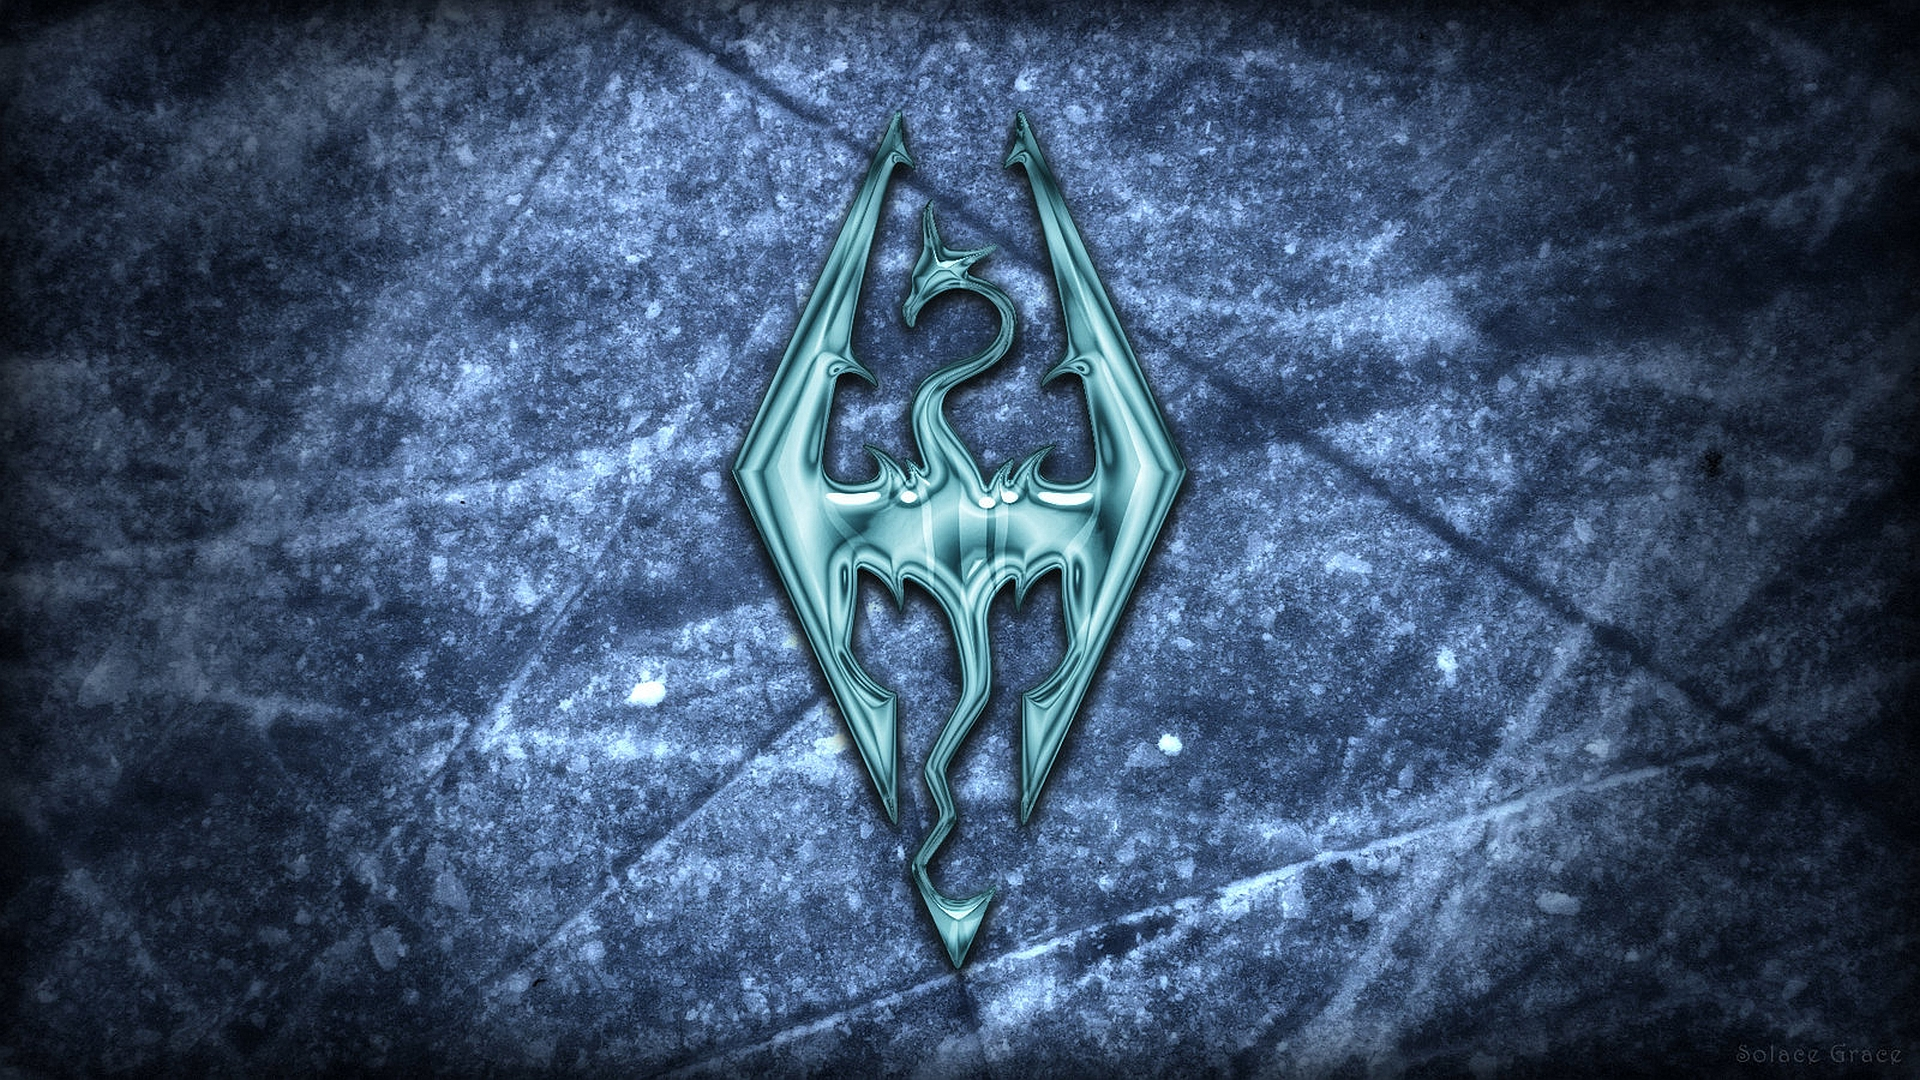 Wallpaper The Elder Scrolls V: Skyrim logo on the ice